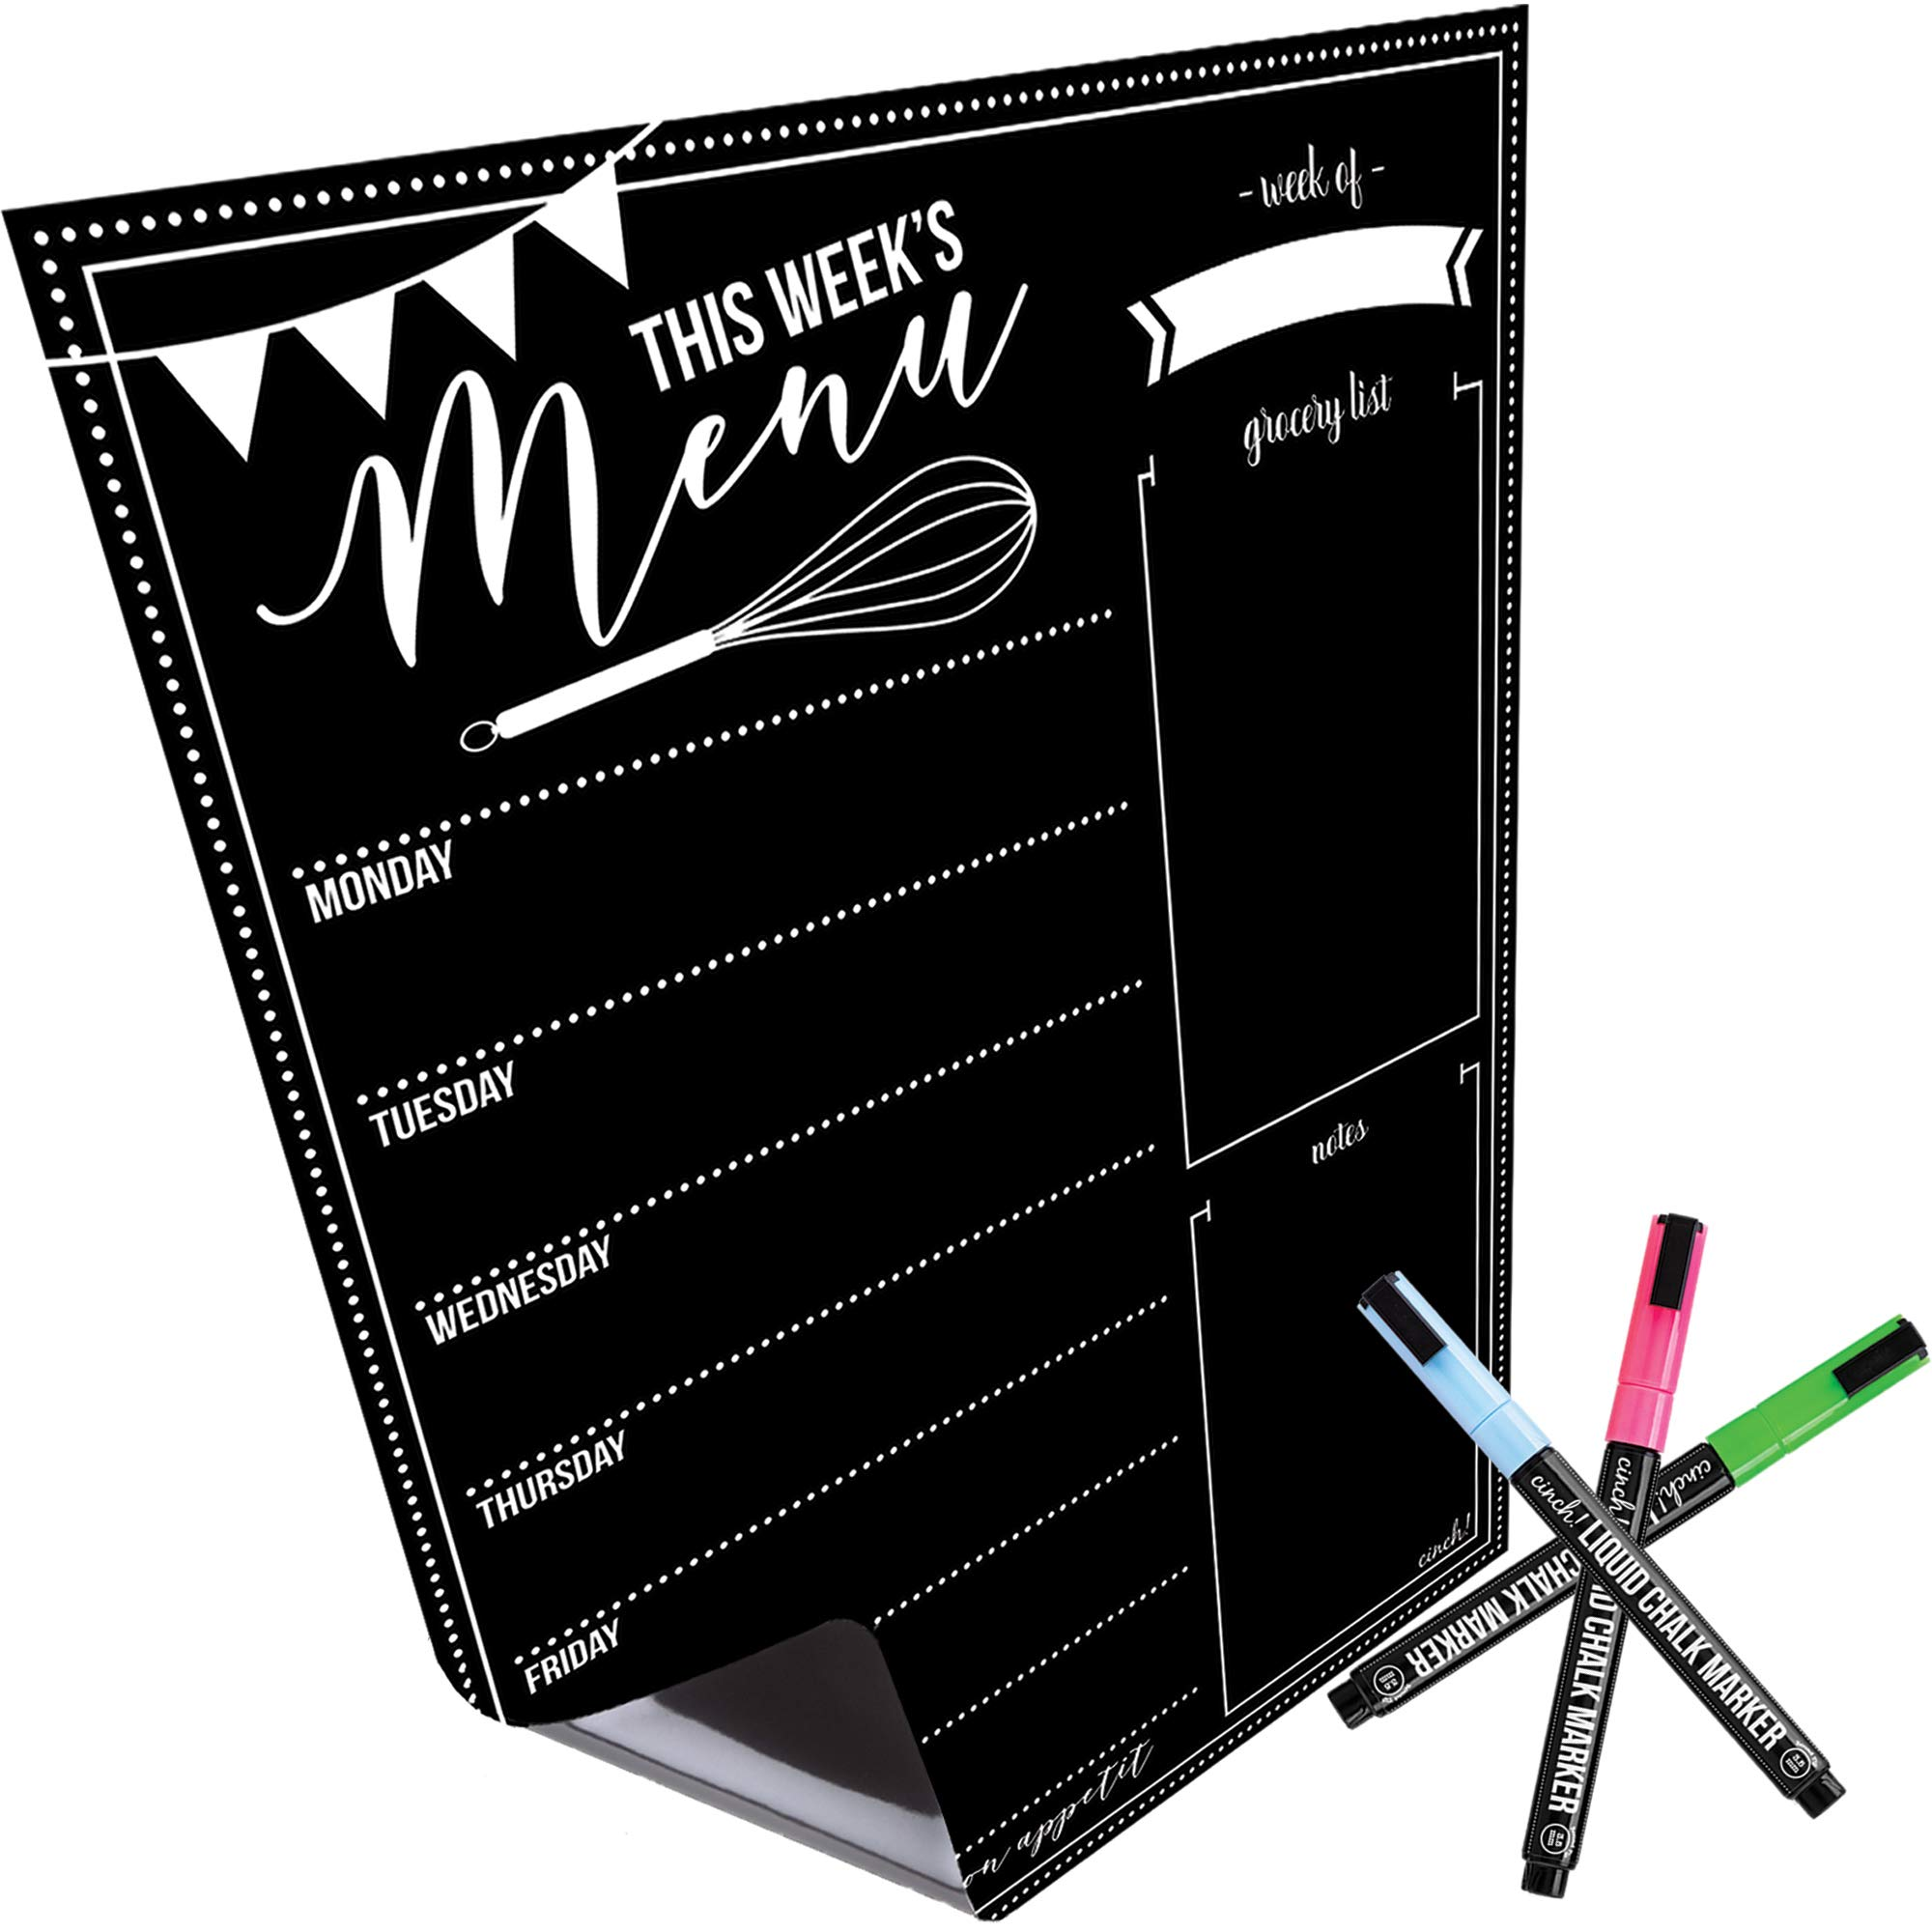 Magnetic Dry Erase Menu Board for Fridge: with Bright Neon Chalk Markers - 16x12'' - Weekly Meal Planner Blackboard and Grocery List Notepad for Kitchen Refrigerator - Whiteboard Chalkboard Magnet